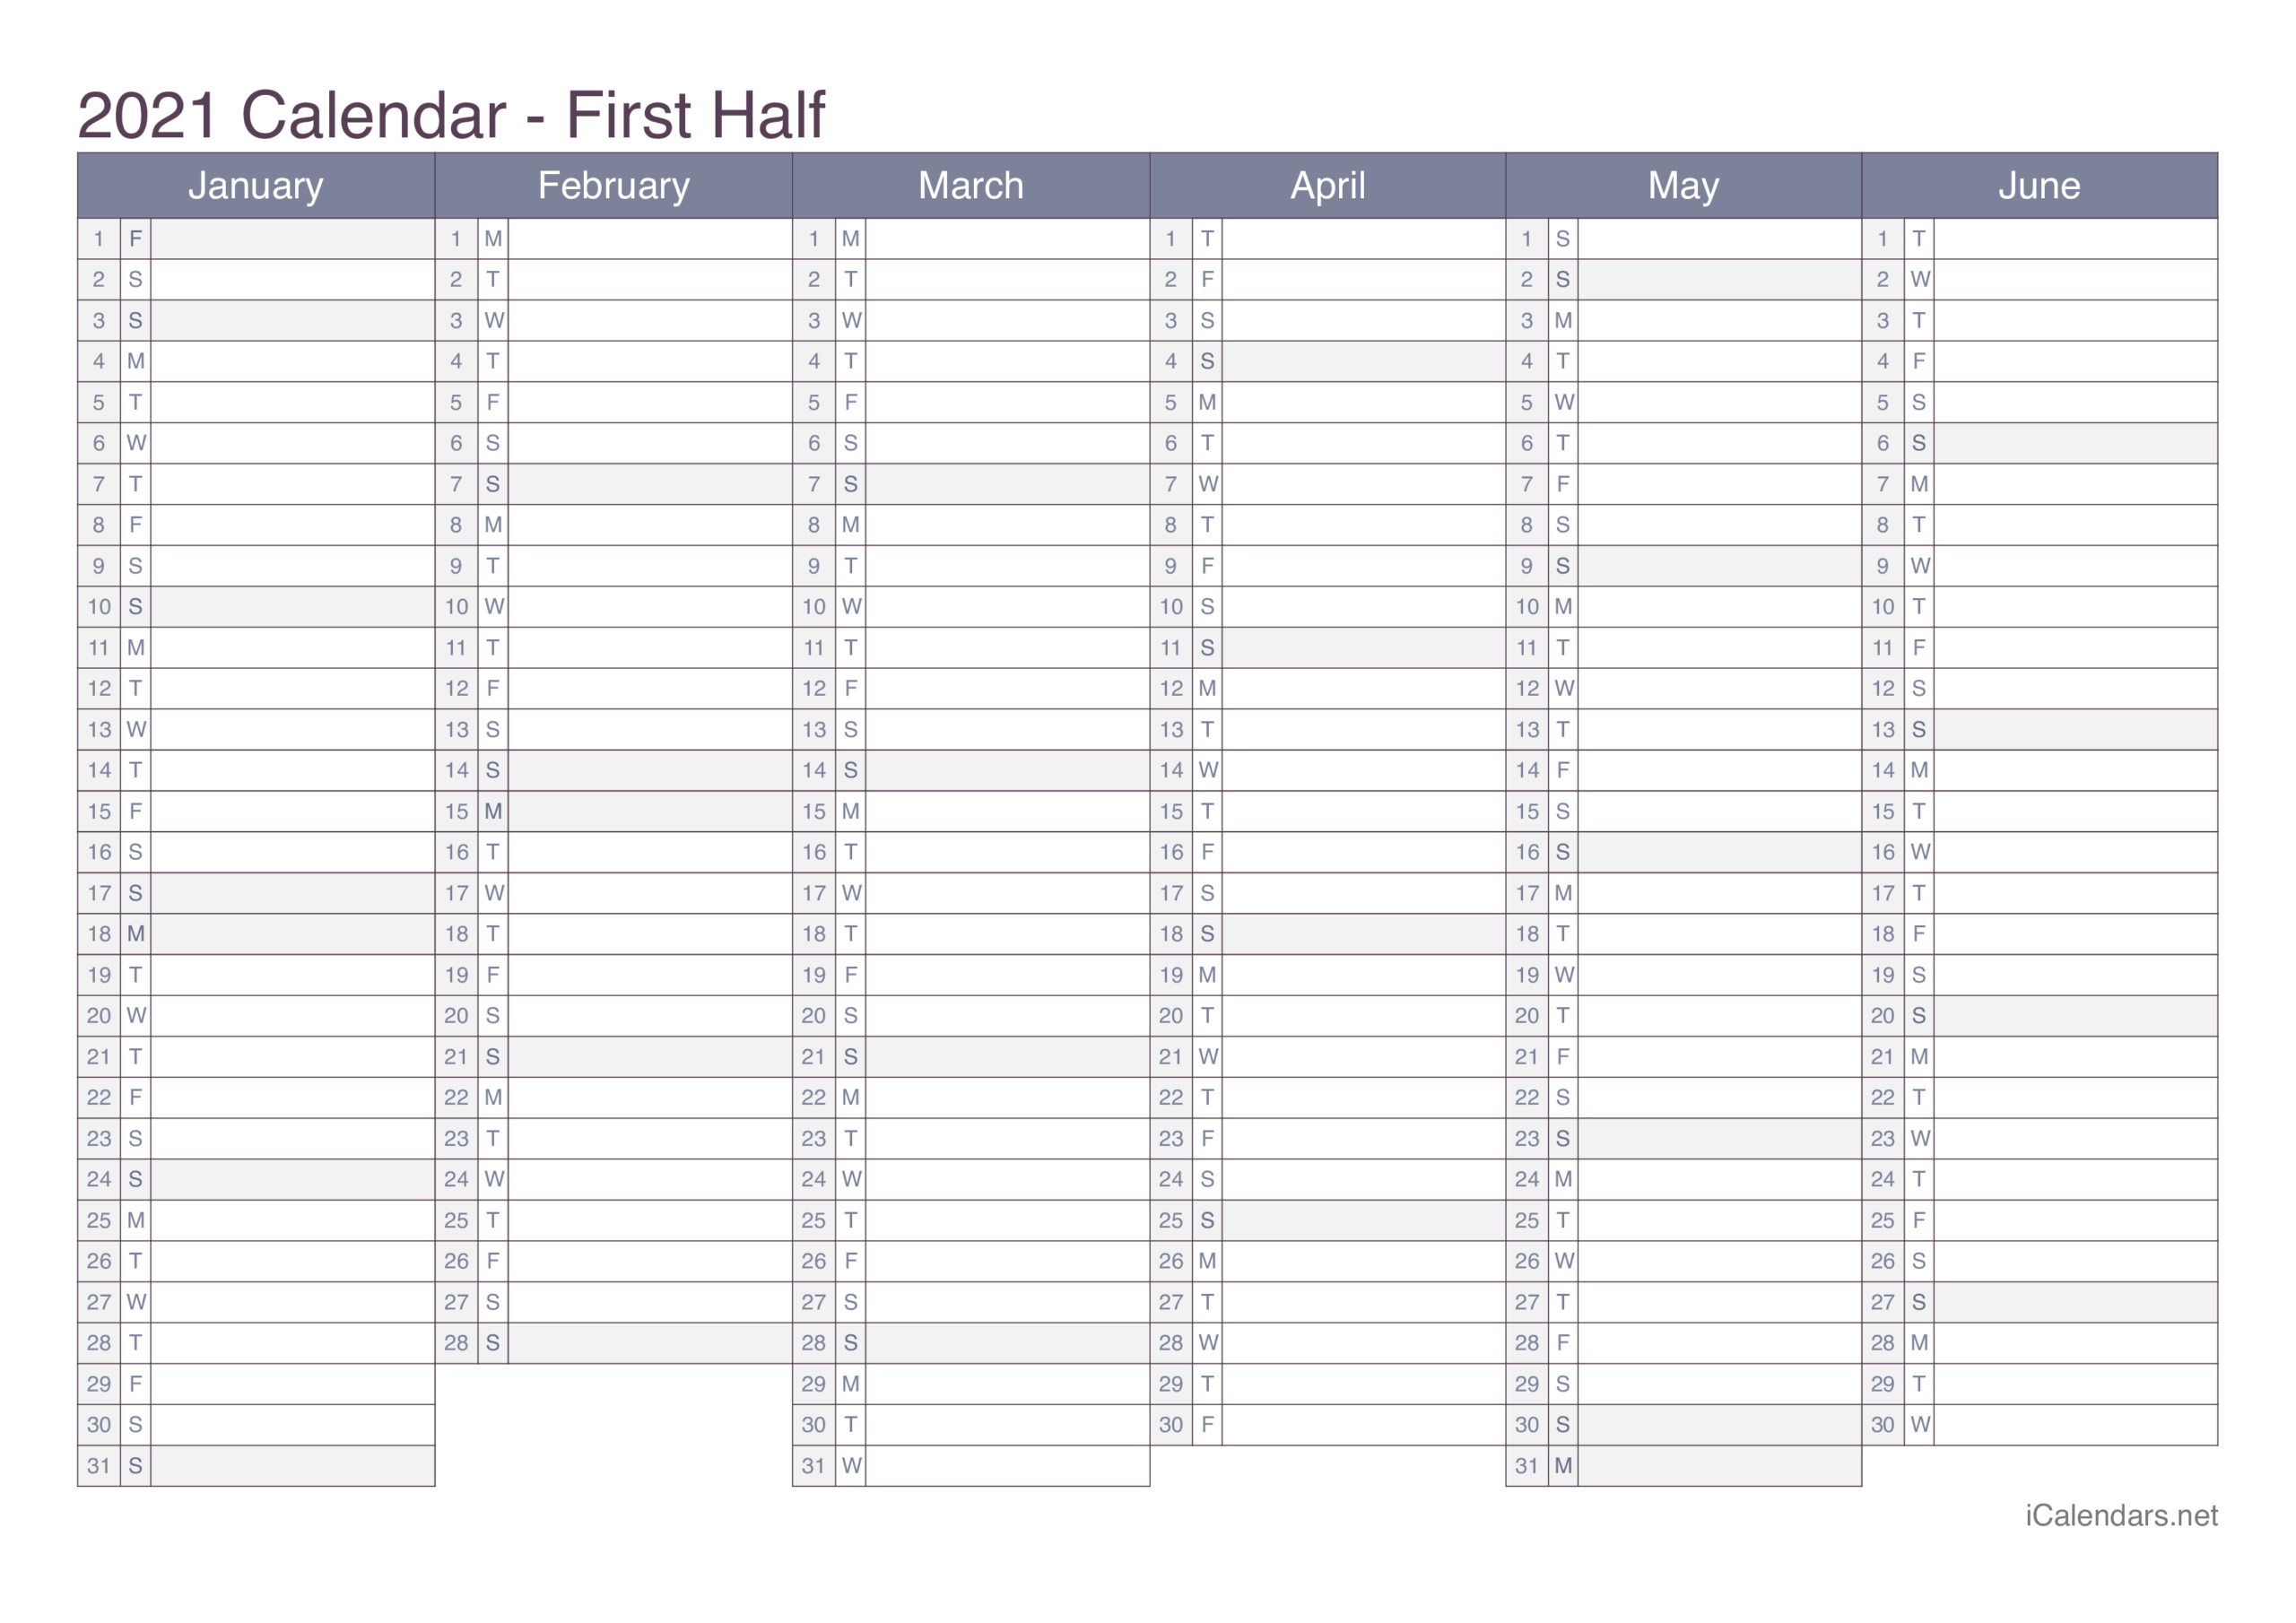 2021 Printable Calendar - Pdf Or Excel - Icalendars for Printable Fill In Calendar 2021